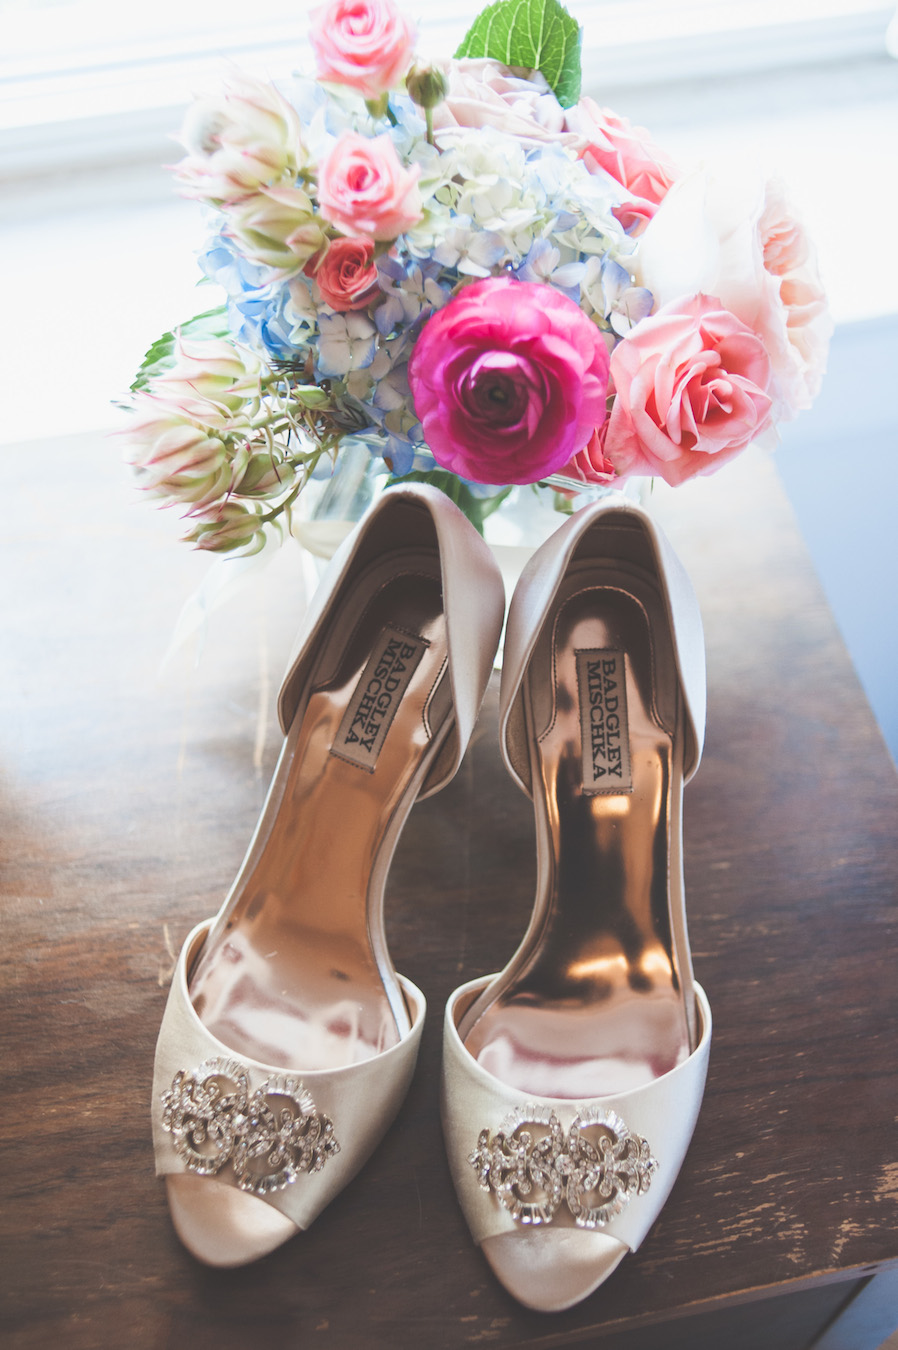 20130824115052_bride_flowers_shoes.jpg